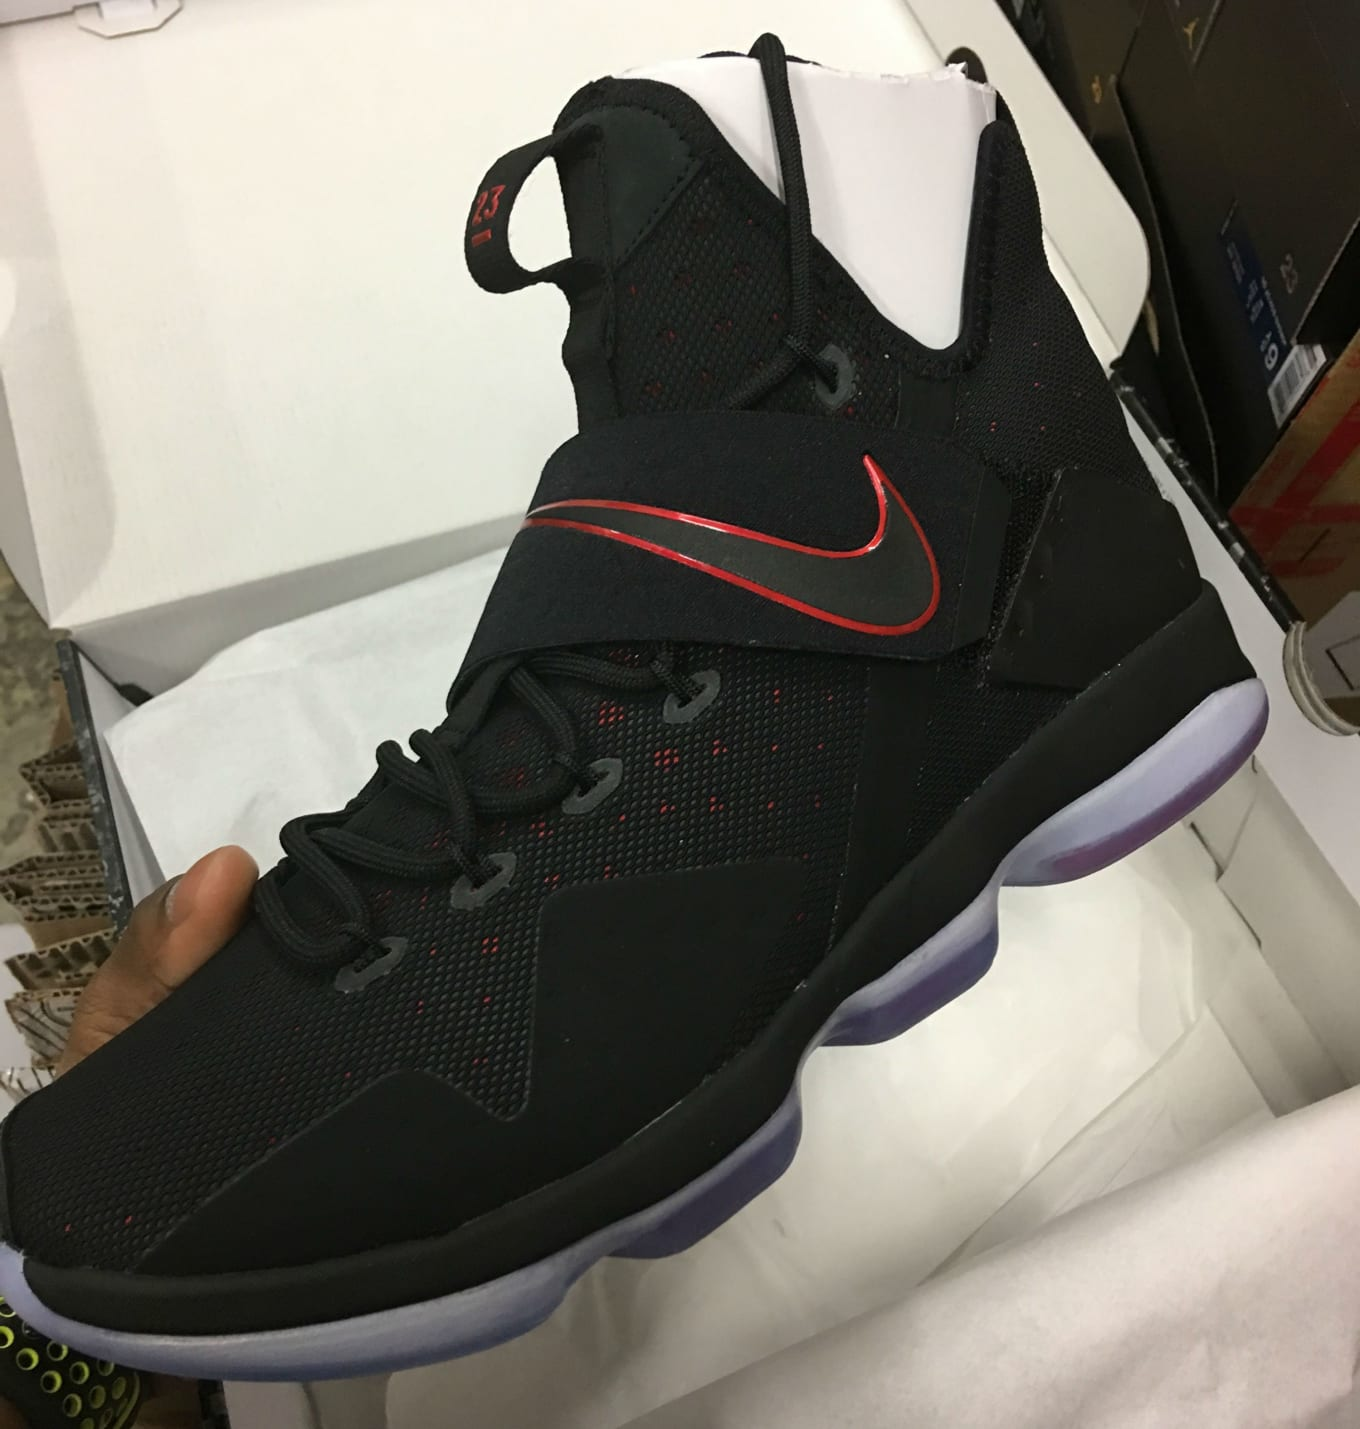 cheap for discount 4c1b8 c7bb1 ... low triple black 878636 002 14 eb29c eb542 italy nike lebron 14 xiv  ddcc0 d74af ...